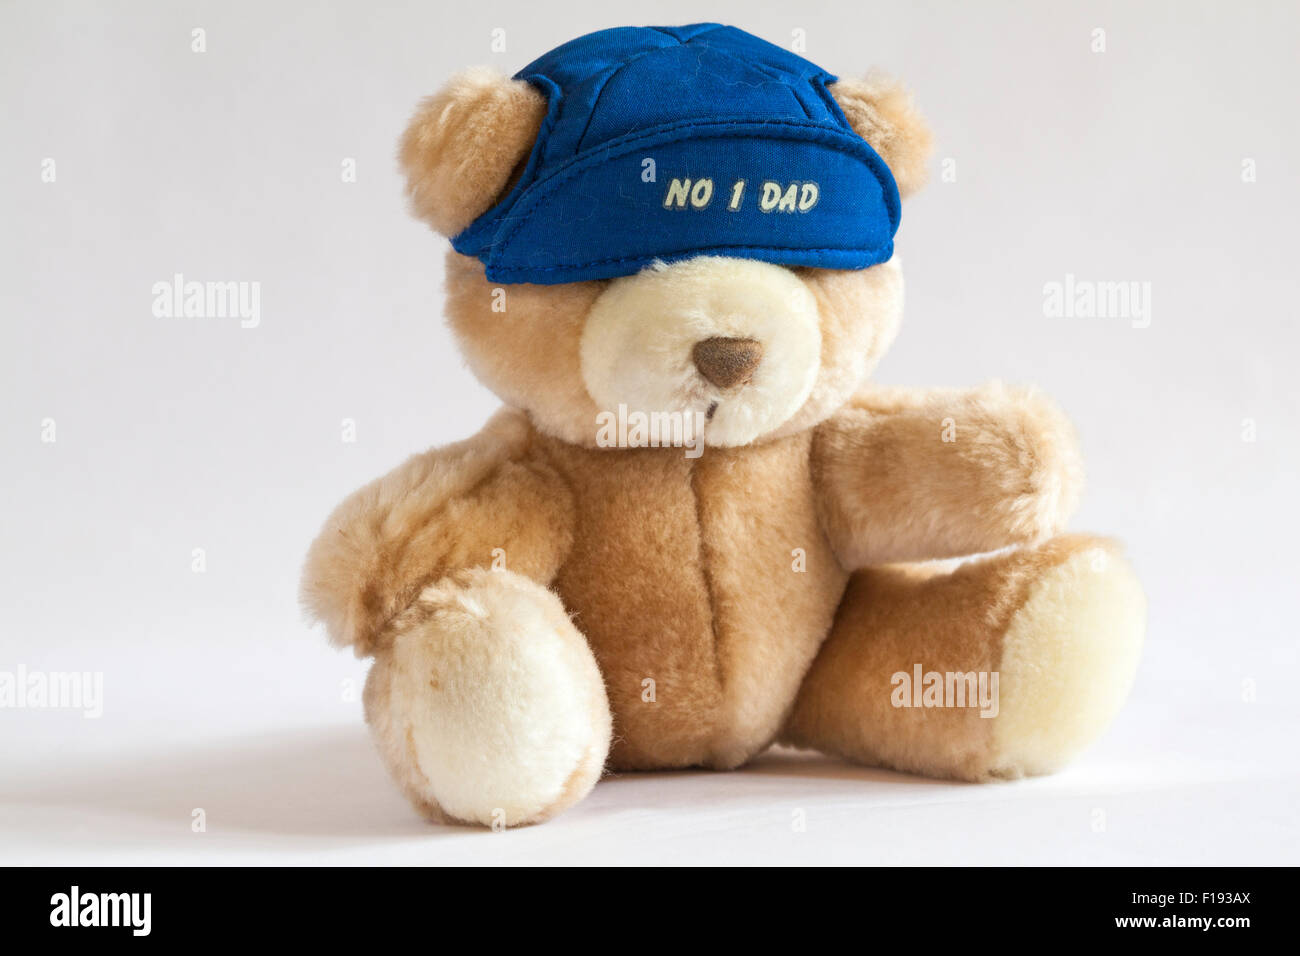 Russ Teddy bear wearing no 1 dad cap isolated on white background - ideal present for Fathers Day - Stock Image